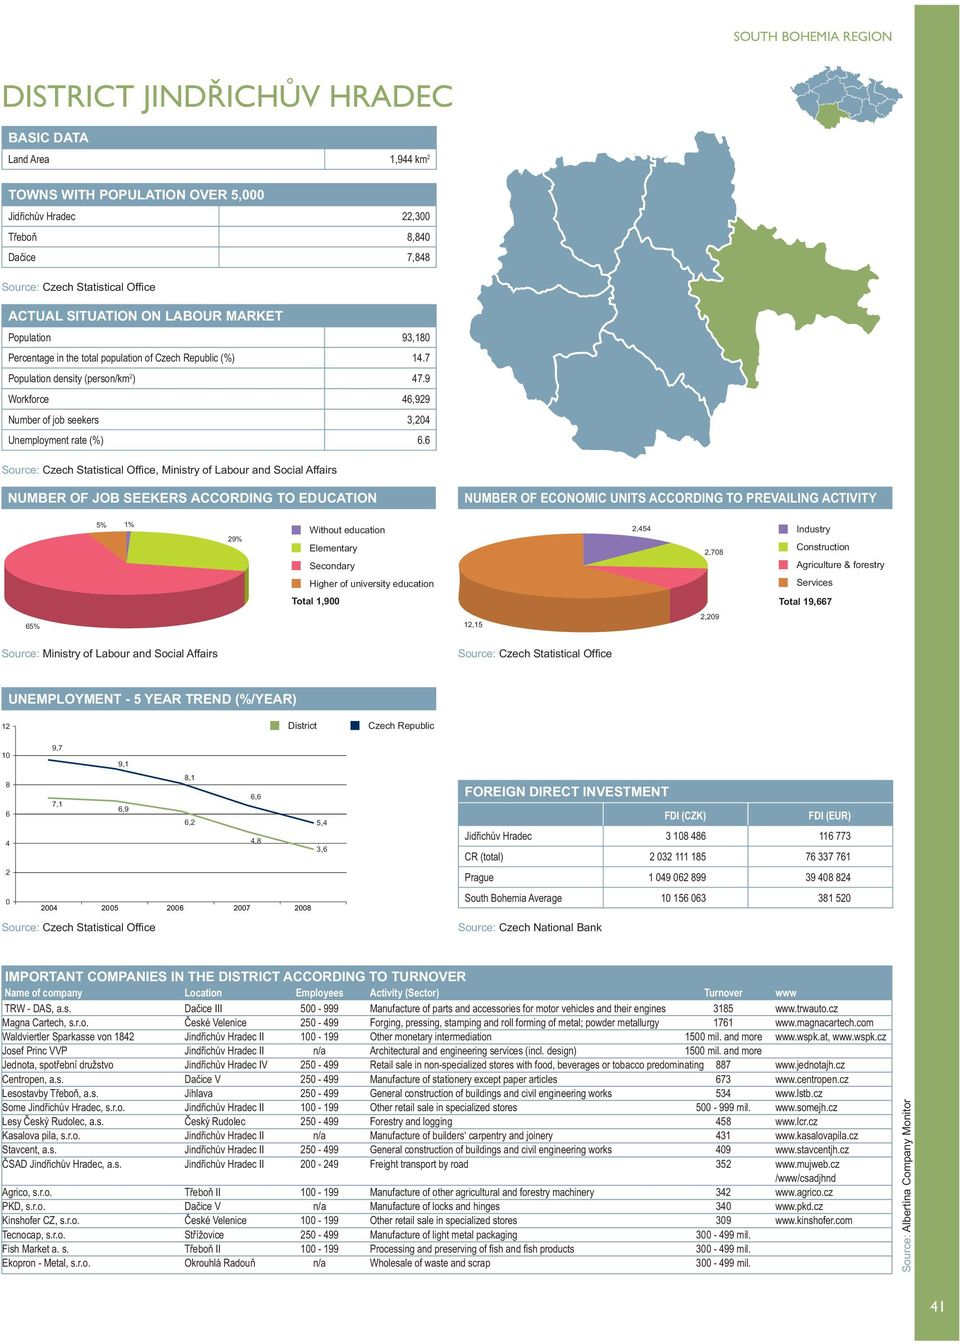 6, Ministry of Labour and Social Affairs 5% 1% 29% 2,454 2,78 Total 1,9 Total 19,667 65% 12,15 2,29 12 1 8 6 4 2 7,1 6,9 6,2 4,8 3,6 Jidřichův Hradec 3 18 486 116 773 TRW - DAS, a.s. Dačice III 5-999 Manufacture of parts and accessories for motor vehicles and their engines 3185 www.